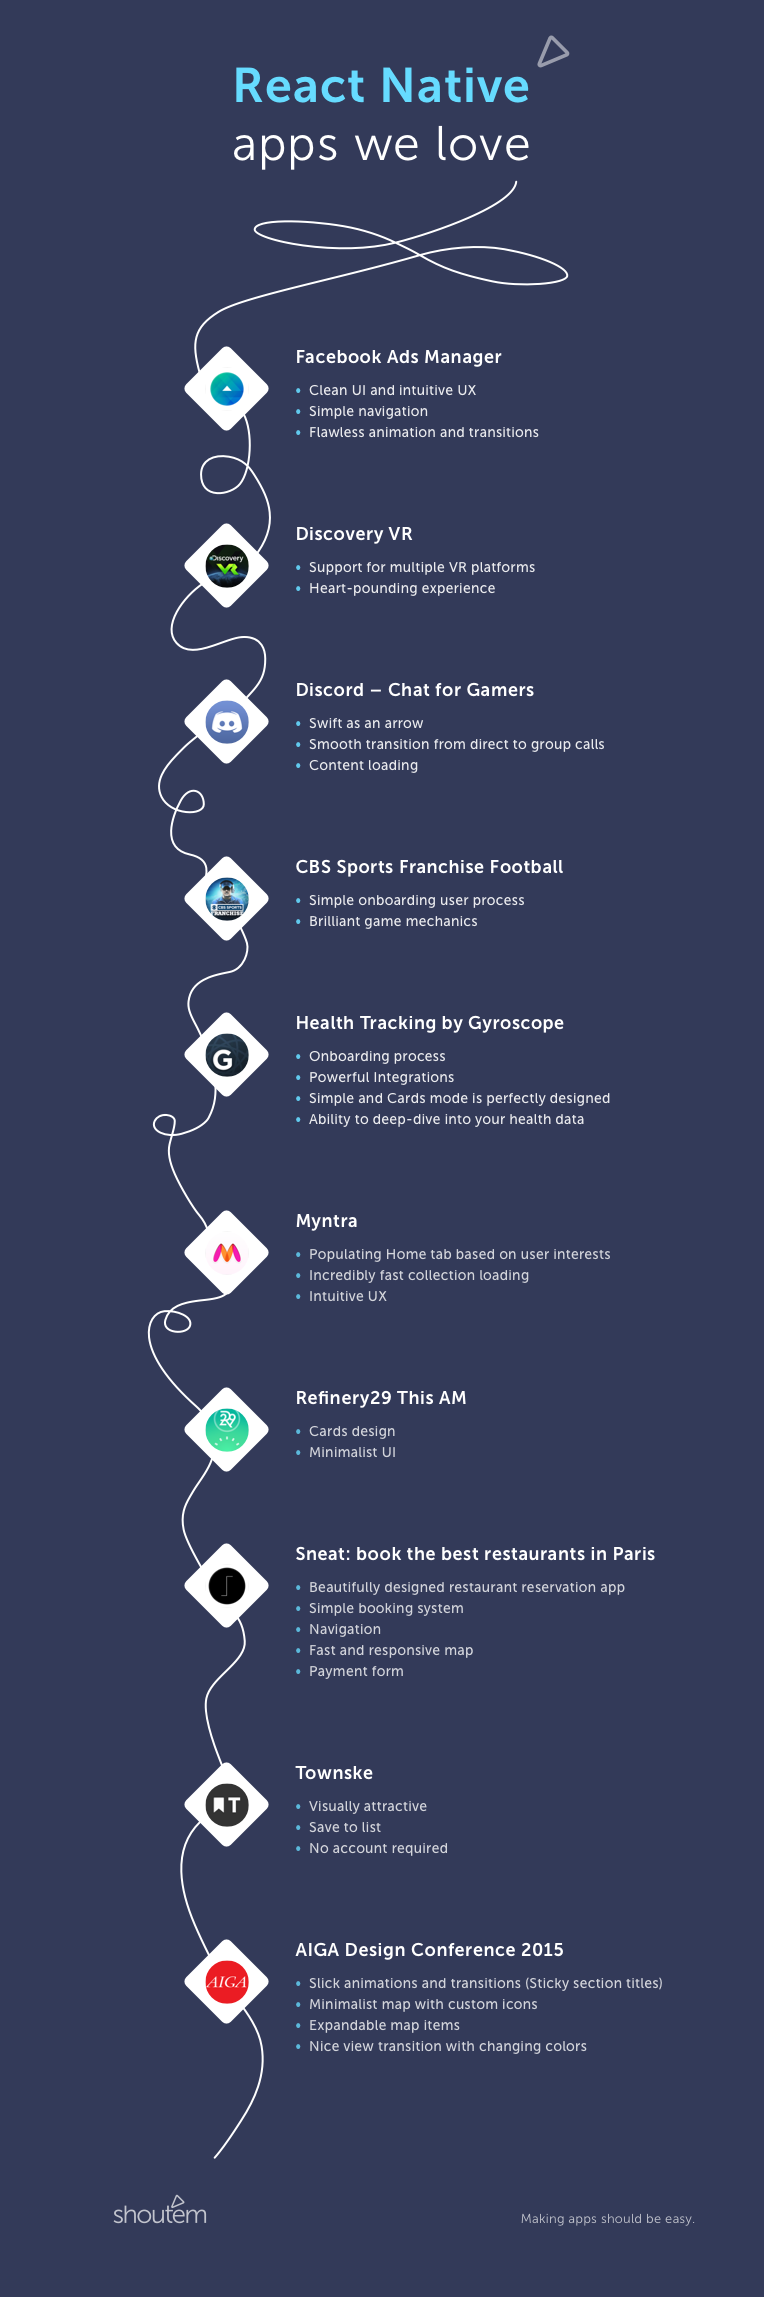 Infographic of the best React Native apps to date.